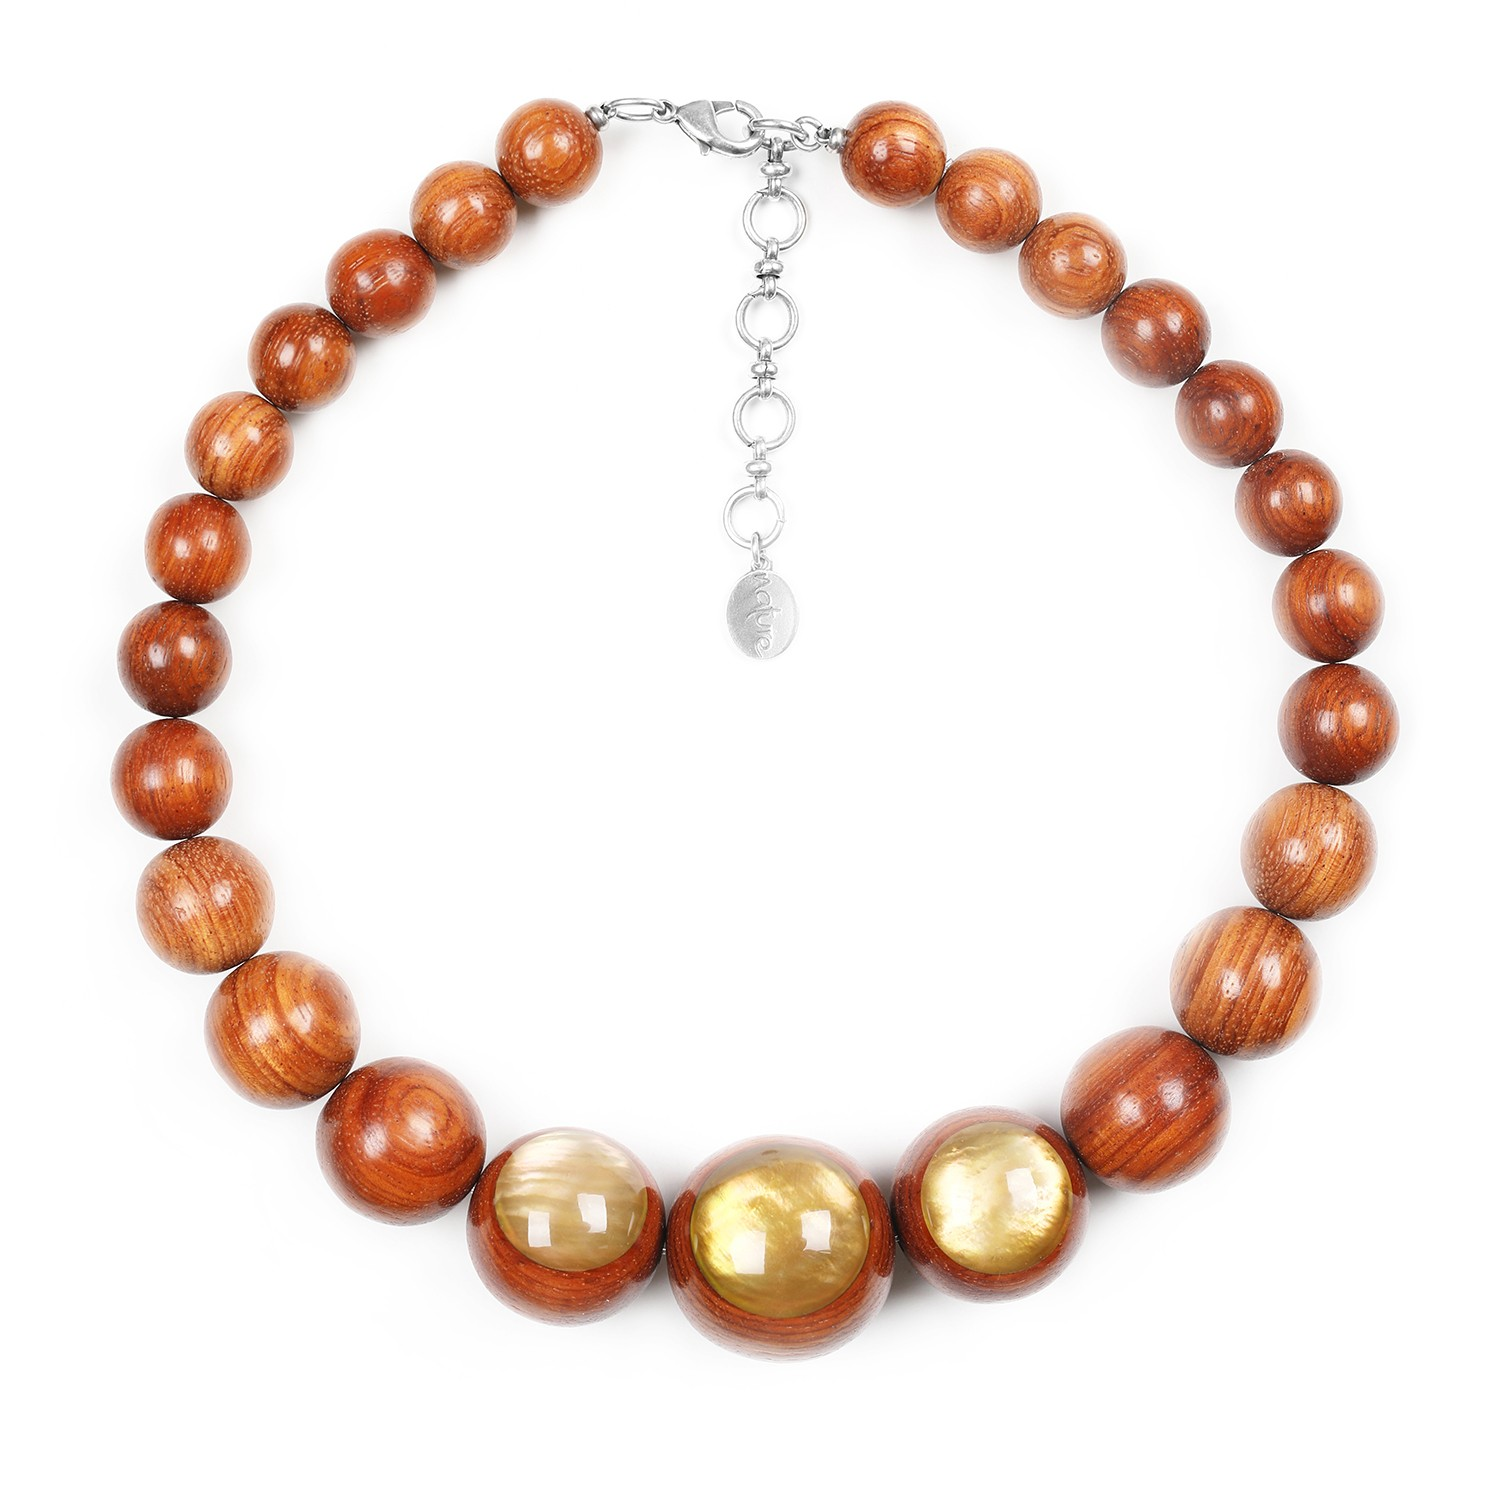 ROUSSETTE graduated necklace